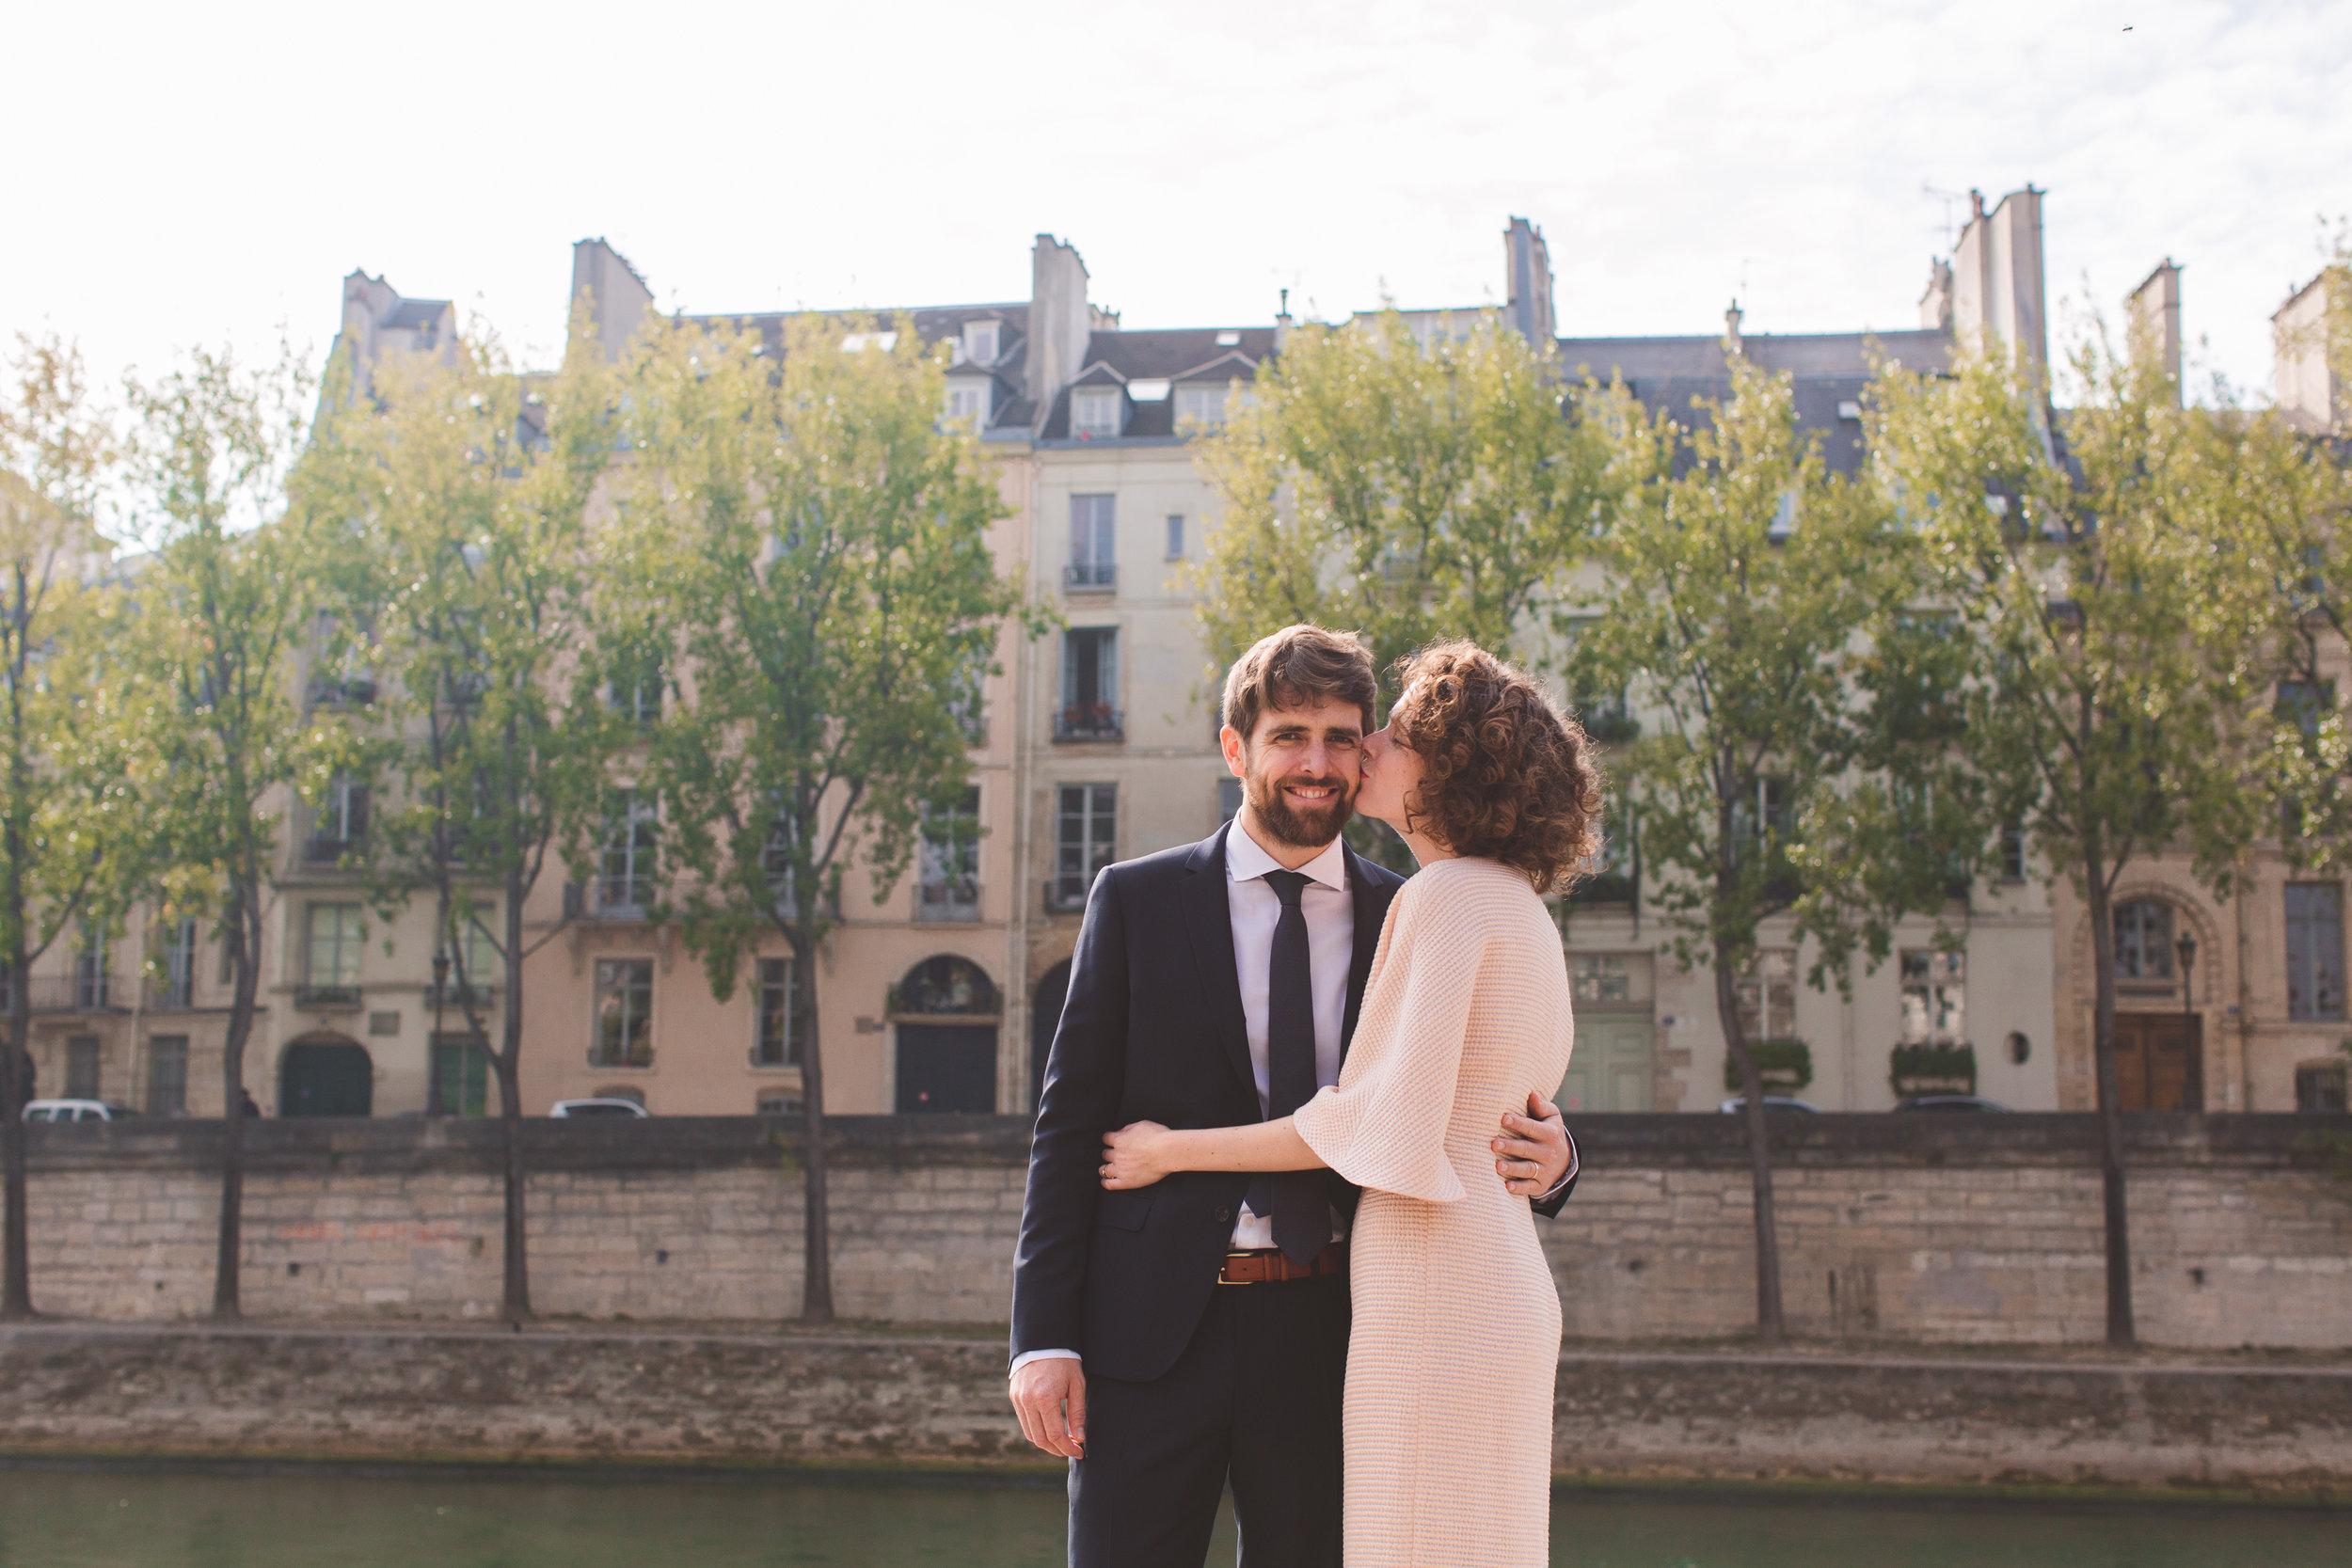 Emma&Nico_WeddingParis_by_UlaBlocksage-197.jpg